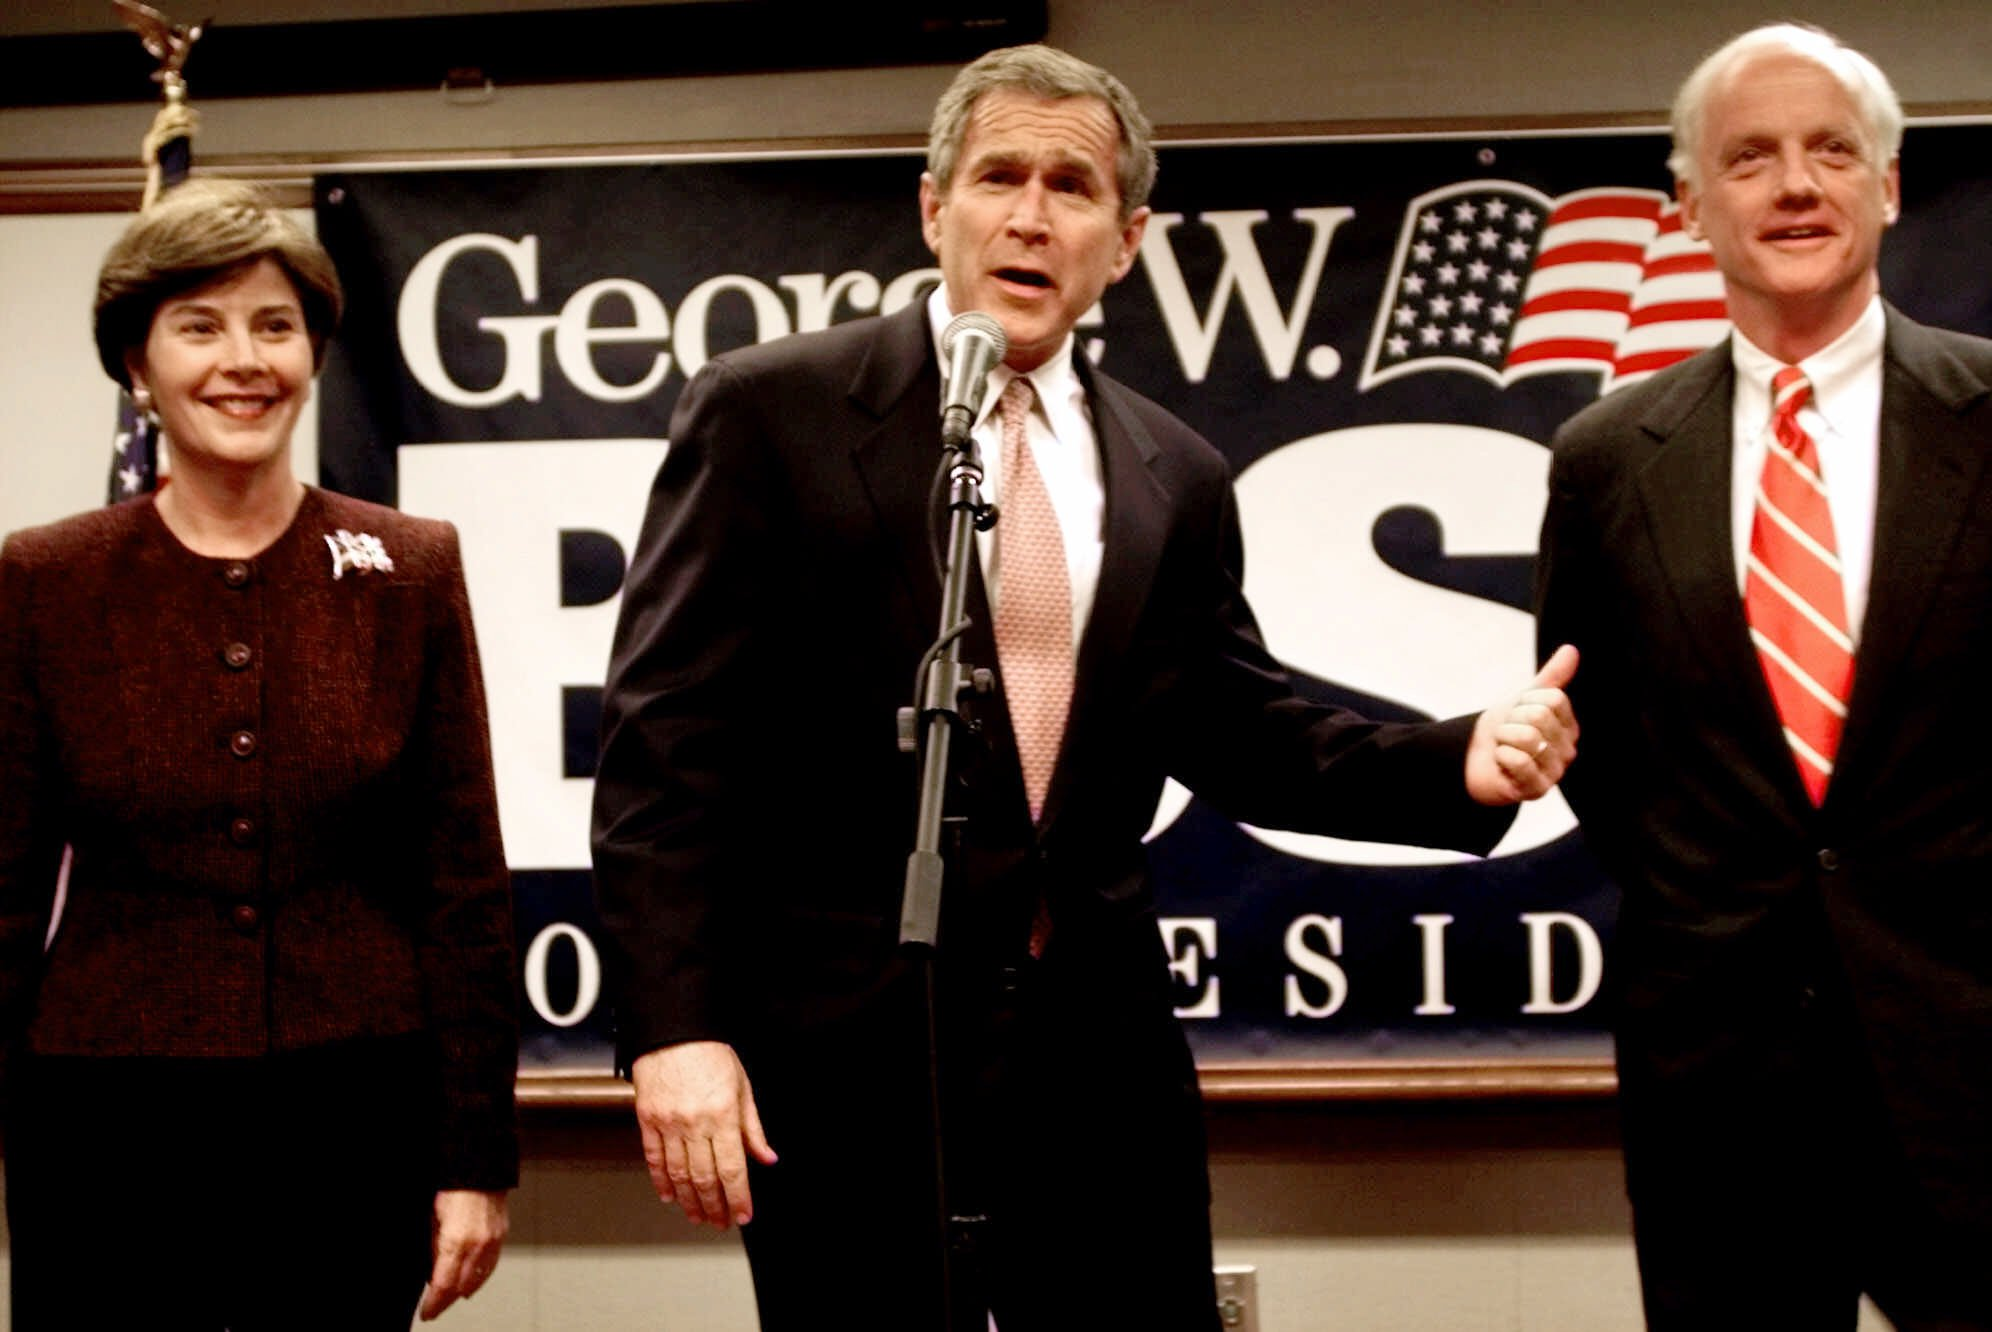 <div class='meta'><div class='origin-logo' data-origin='none'></div><span class='caption-text' data-credit='ASSOCIATED PRESS'>Flanked by his wife, Laura, Republican presidential candidate George W. Bush points to fellow Governor Oklahoma's Frank Keating at a campaign rally.</span></div>